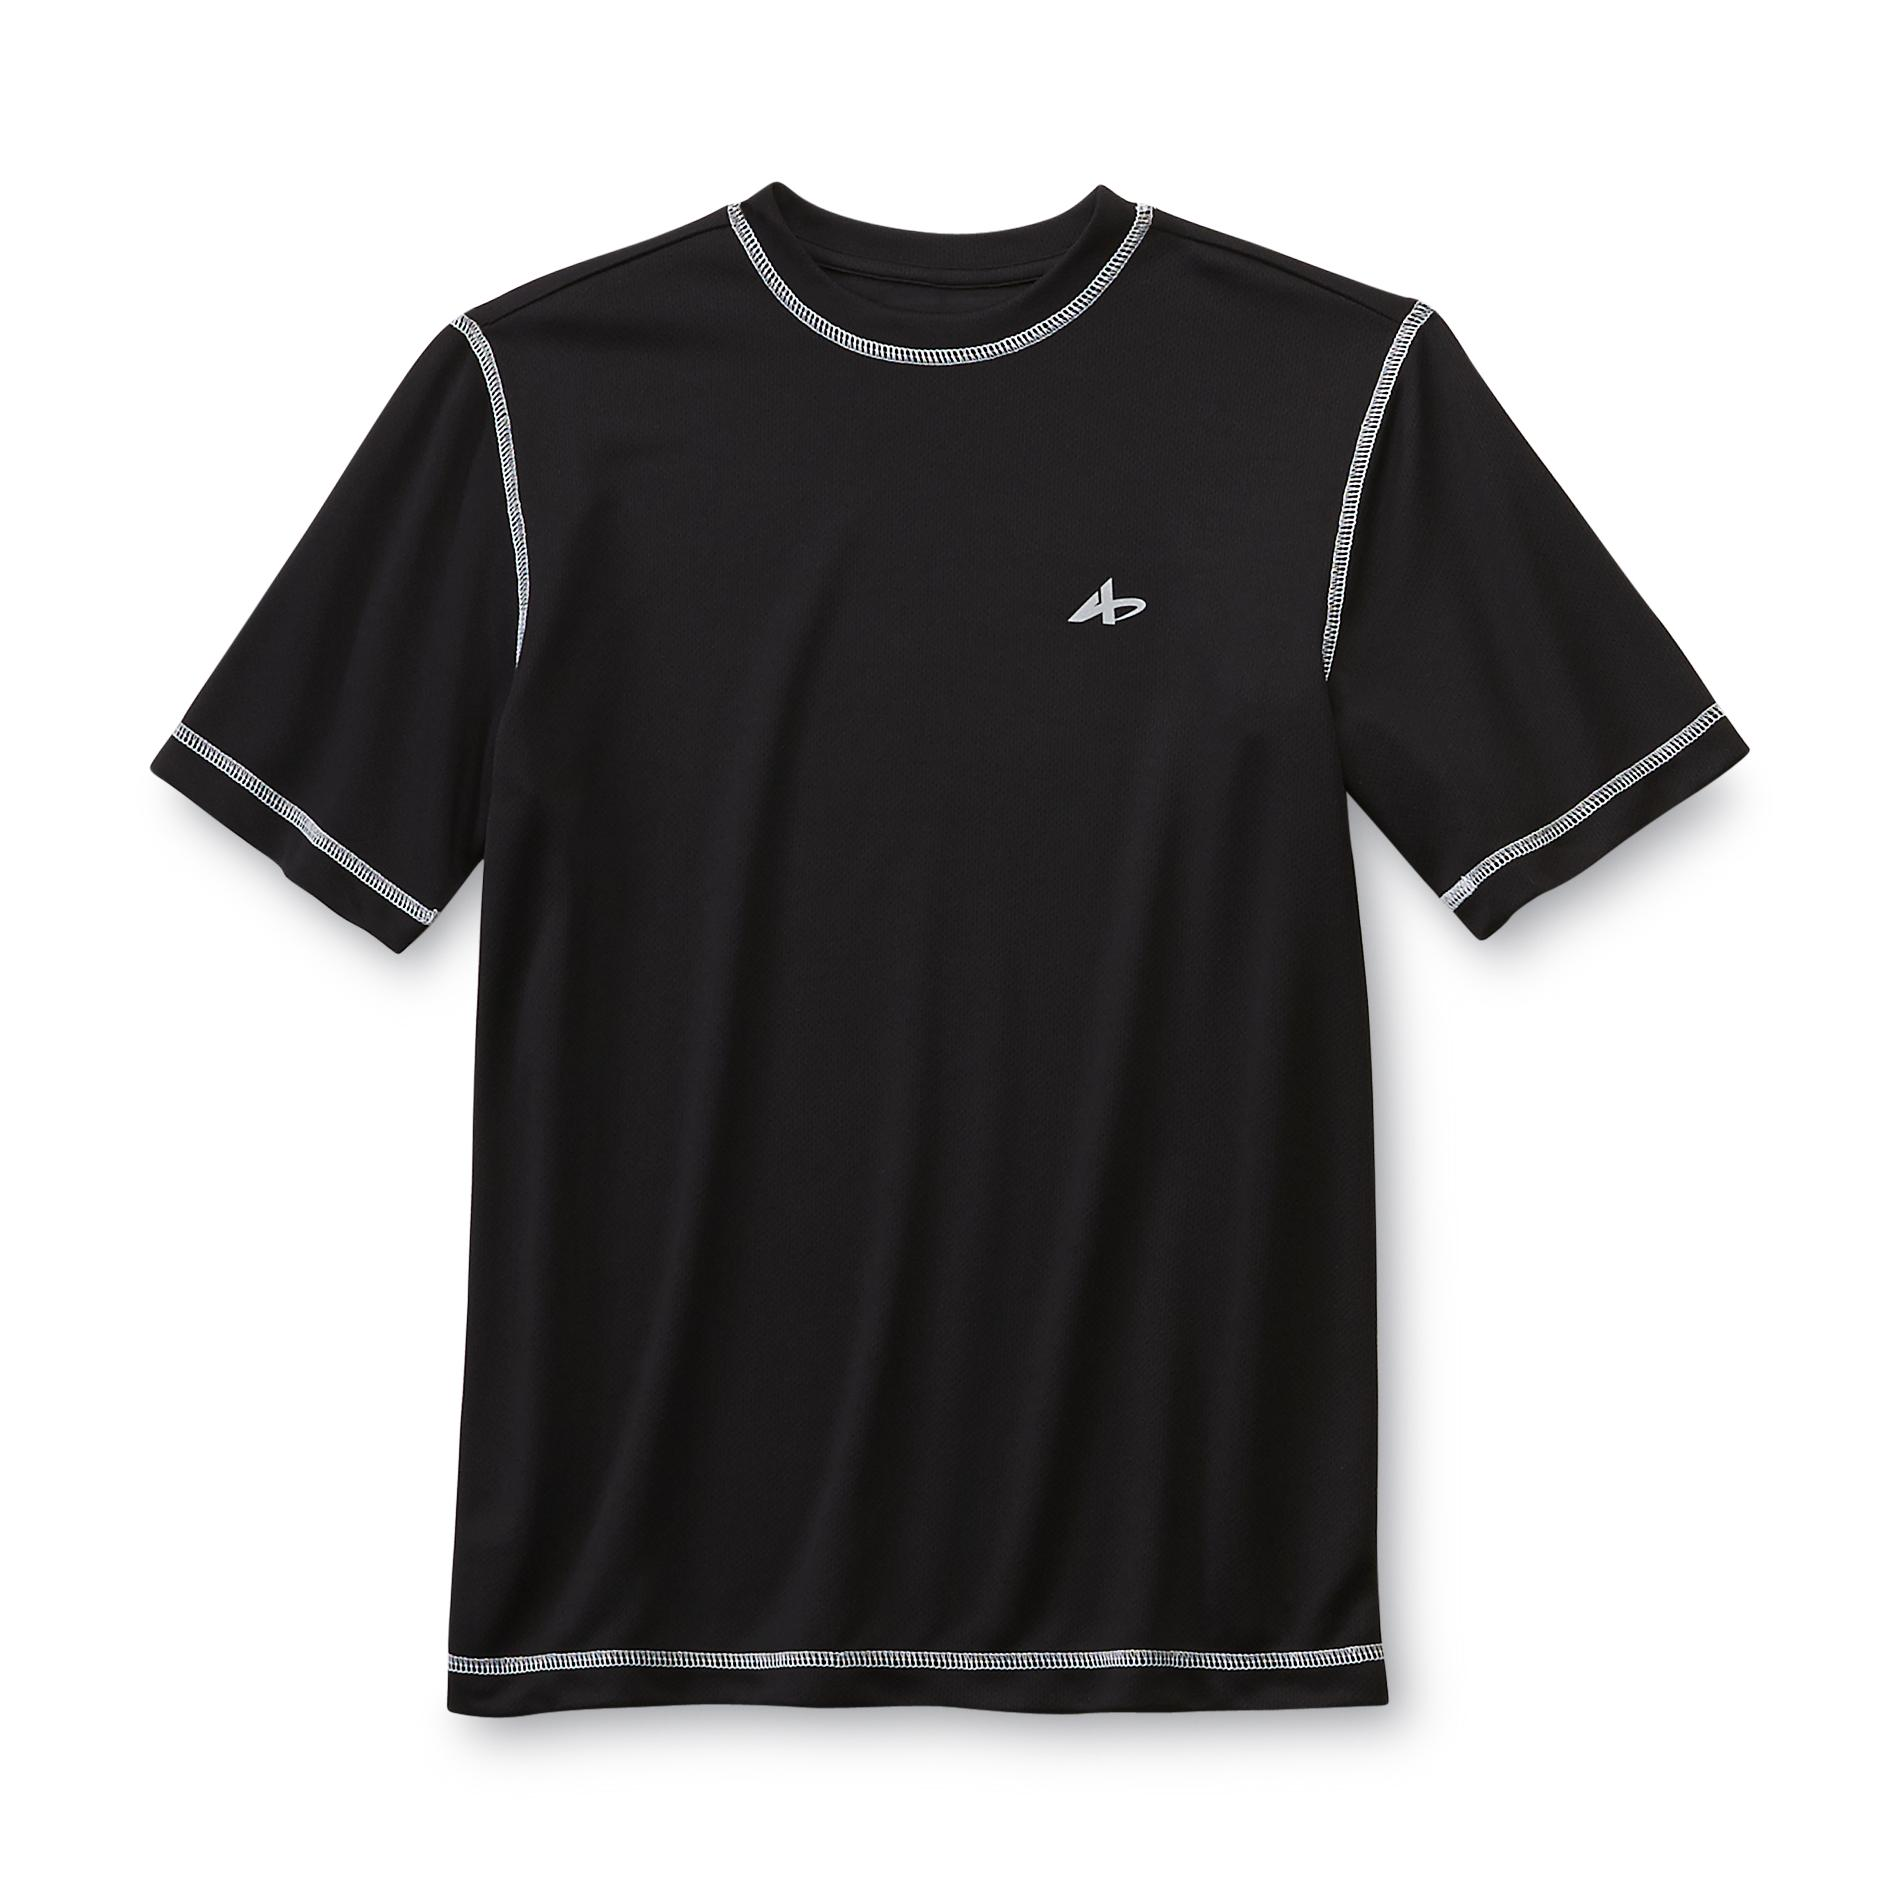 Athletech Boy's Mesh Athletic T-Shirt at Kmart.com